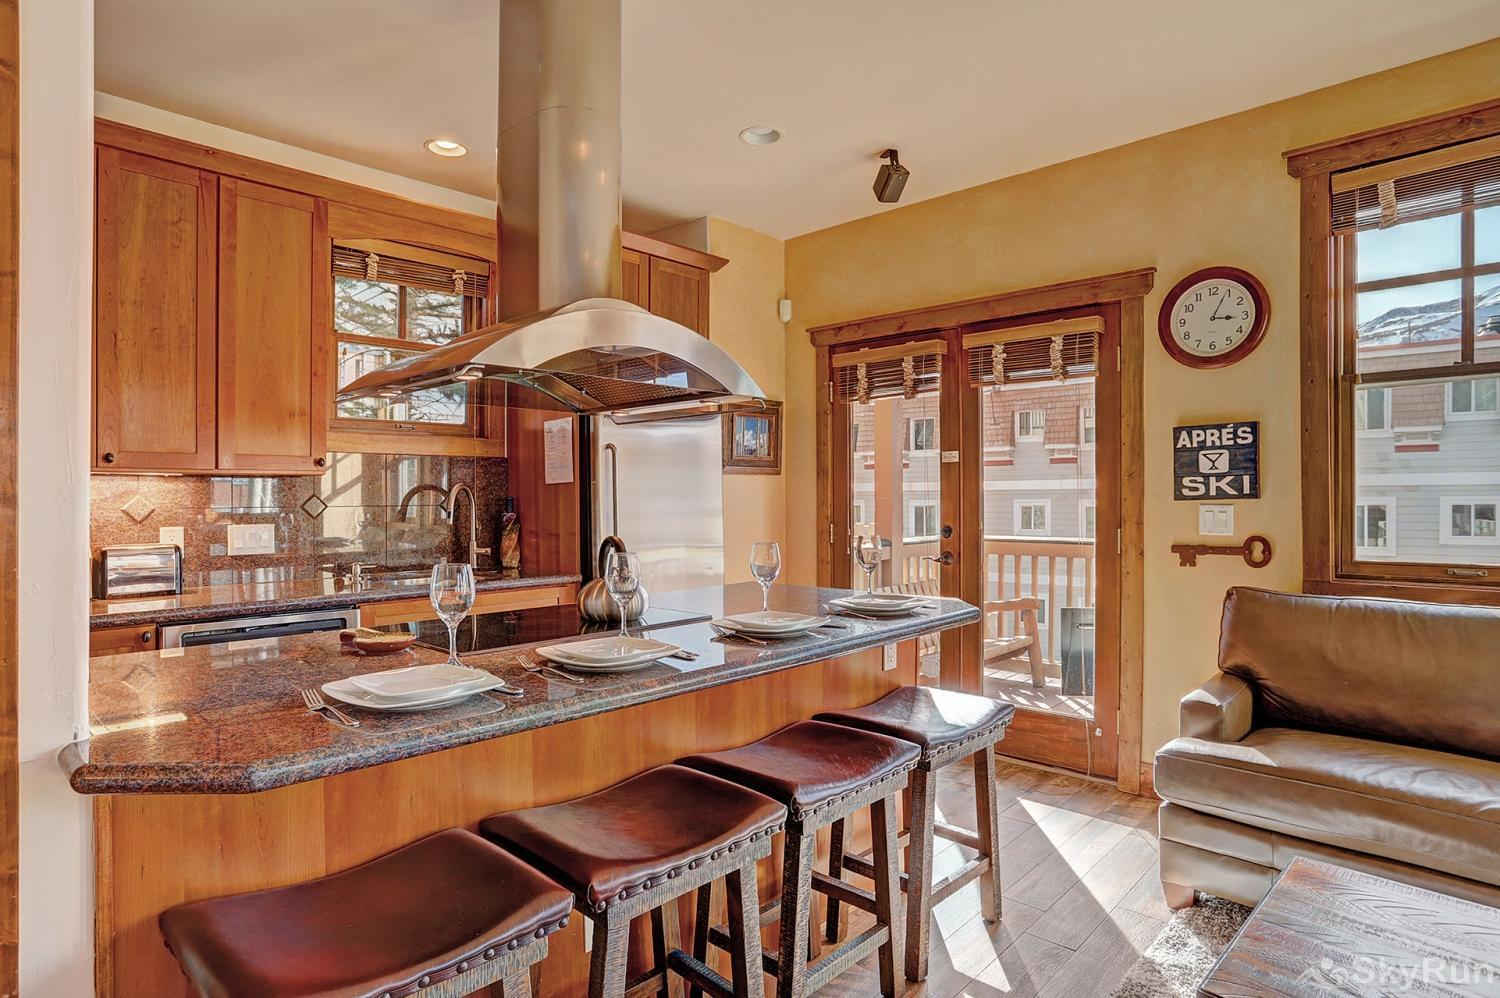 Mountain Ridge Chalet Beautiful newly renovated kitchen and living area